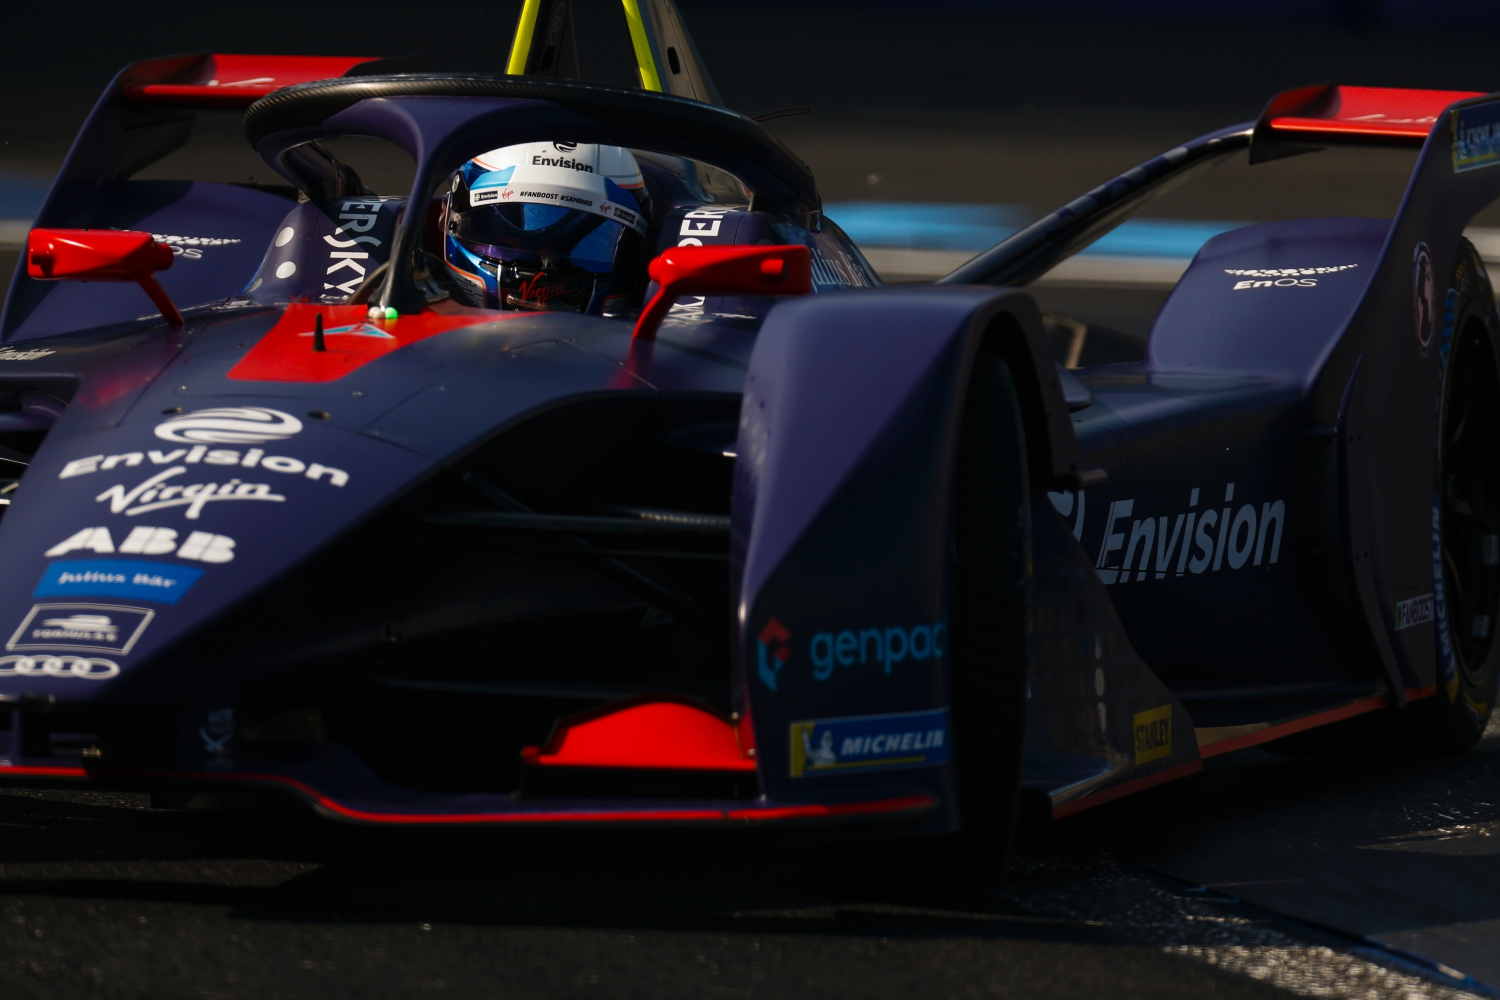 Sam Bird - Envision Virgin Racing / © FIA Formula E Alastair Staley / LAT Images